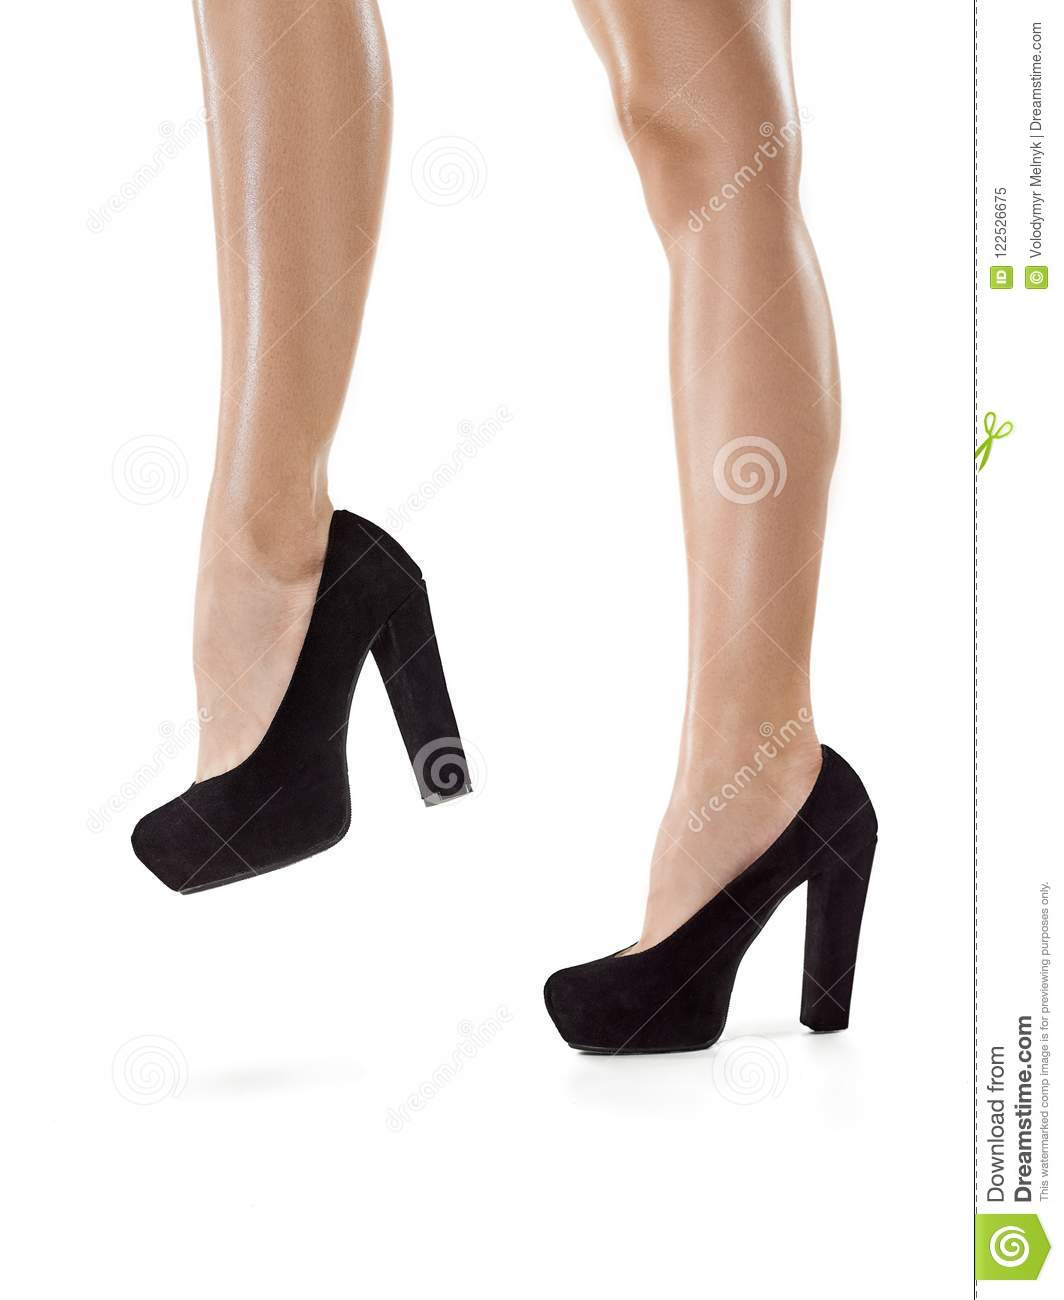 23dbb67a7fbfc7 Tanned female legs in high heels isolated on white background stock jpg  1064x1300 Tanned heels